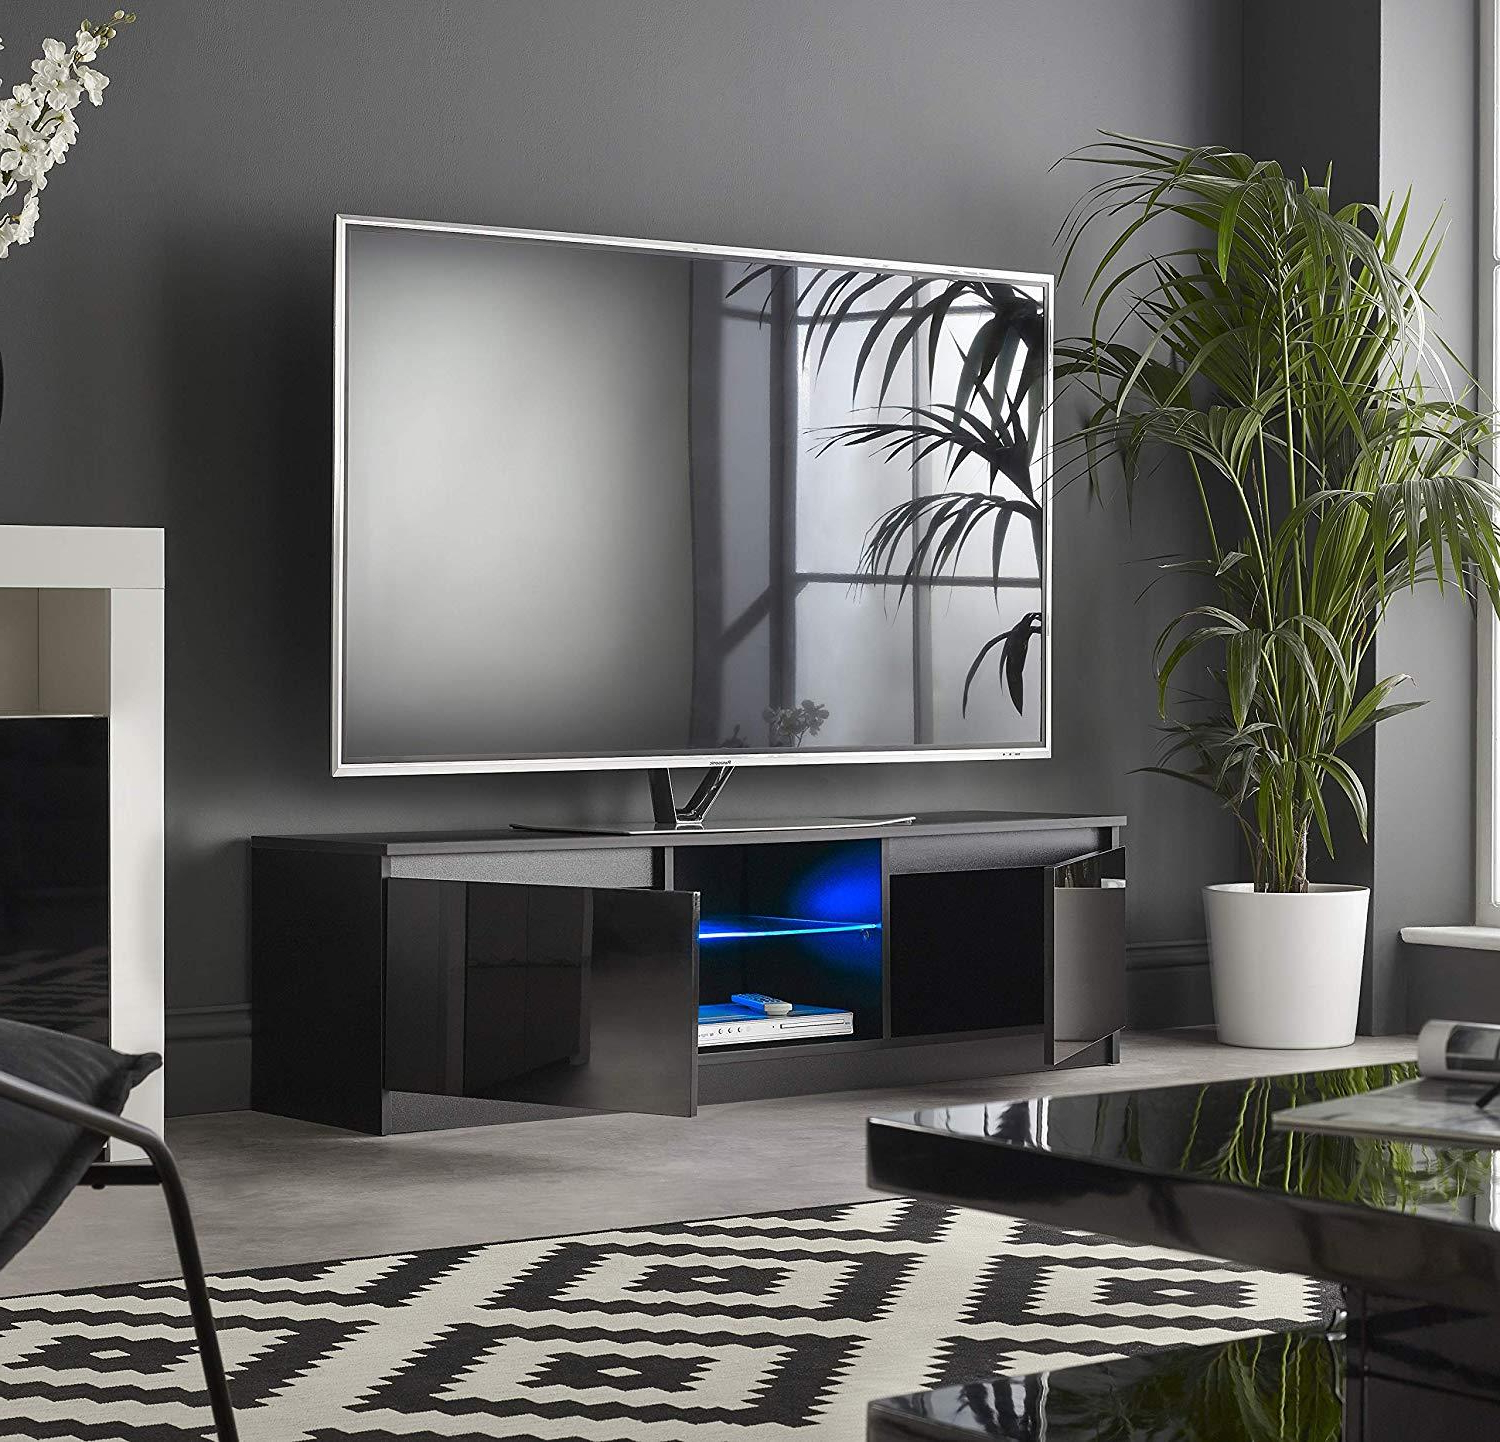 New Modern Tv Unit Cabinet Stand Sideboard 120 Cm – White Intended For Hannu Tv Media Unit White Stands (View 9 of 20)